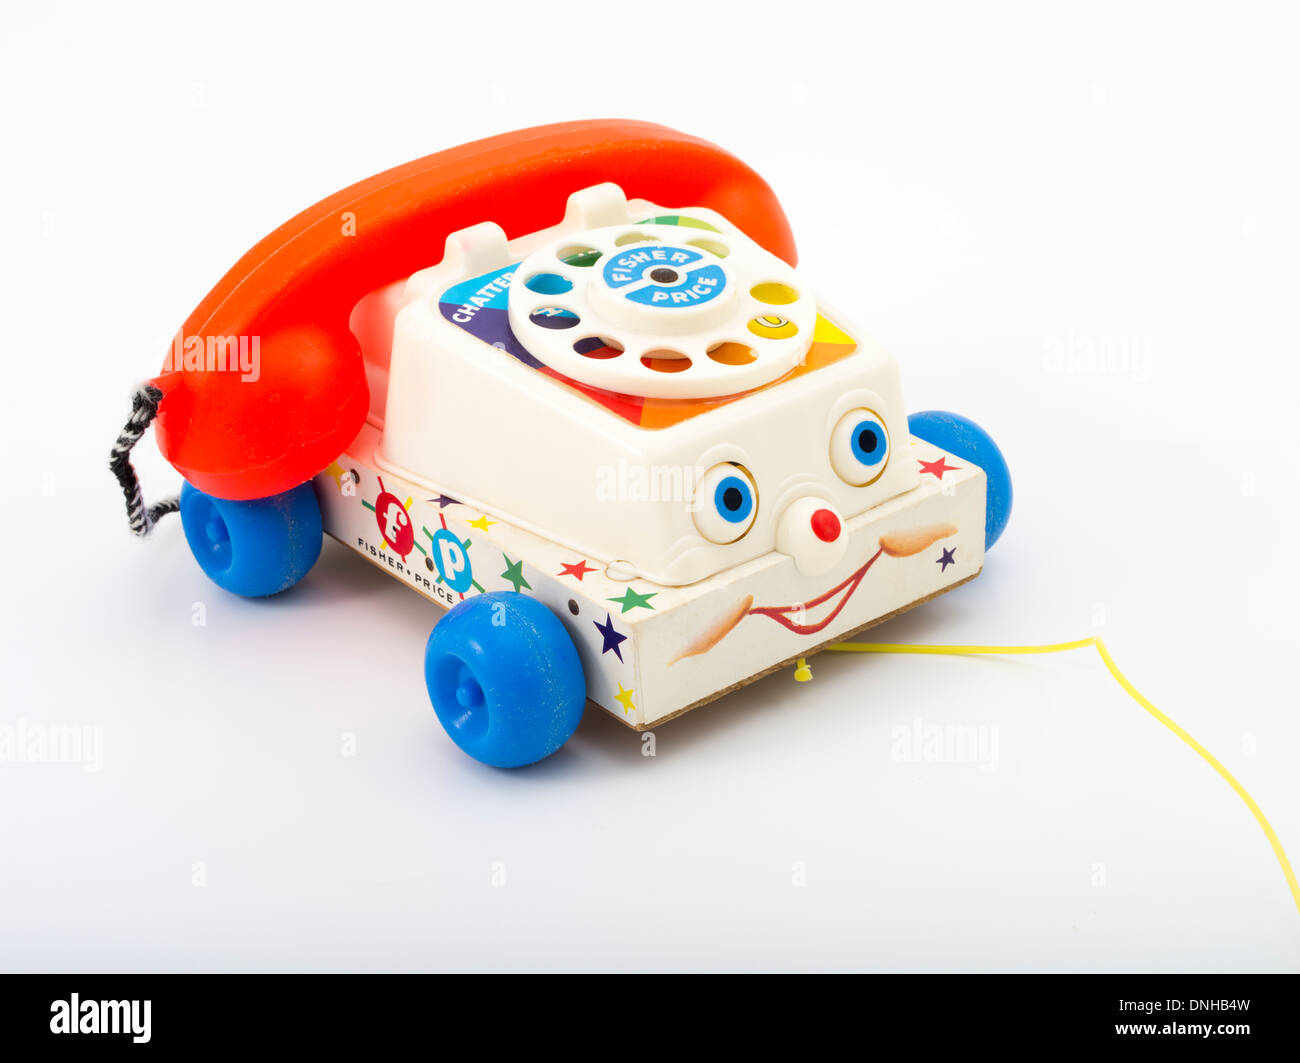 Fisher-Price ( Fisher Price ) Chatter Telephone toddlers pull toy telephone with rotary dial. from 1962 - Stock Image